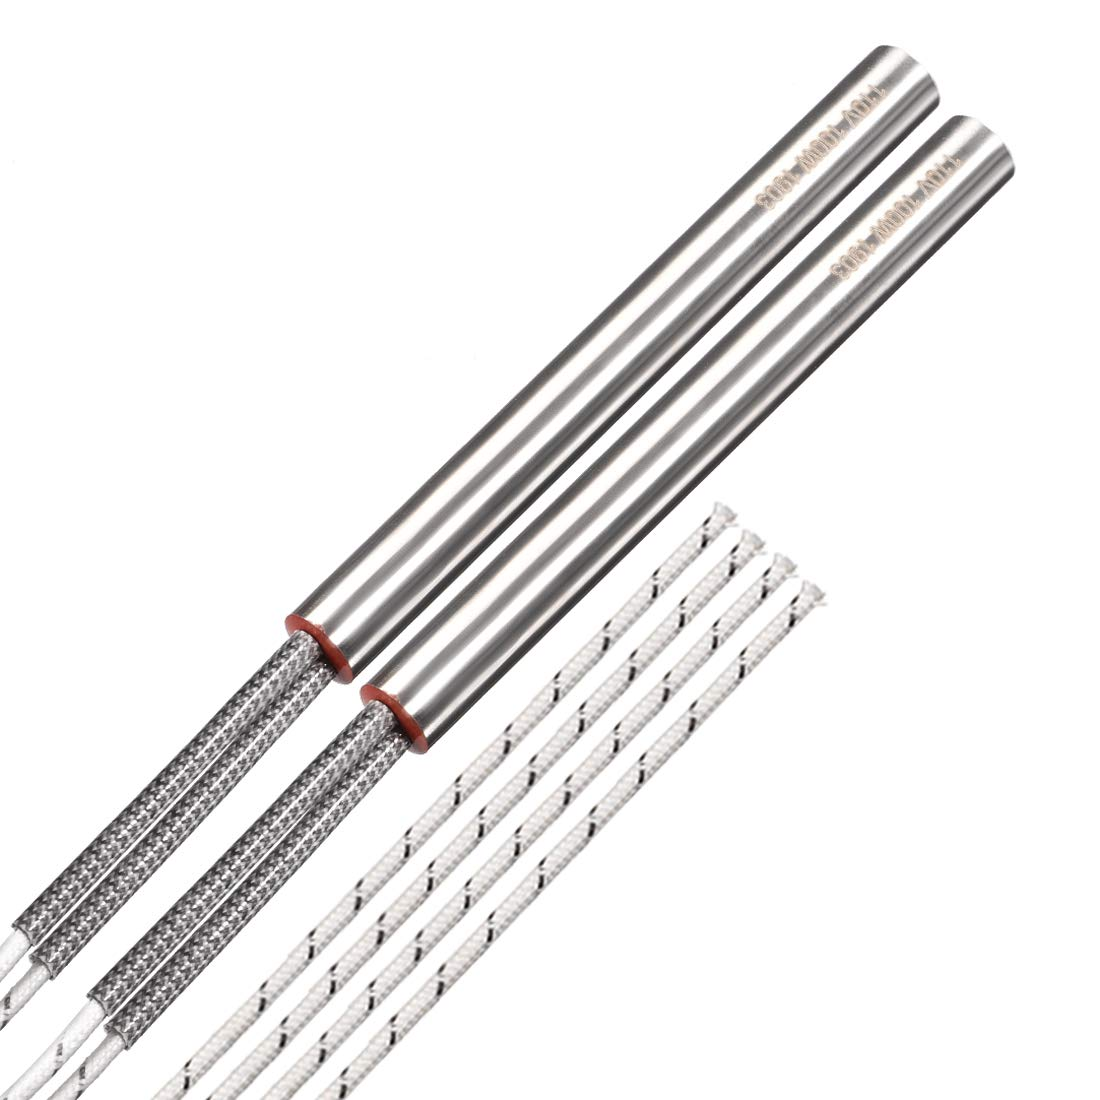 uxcell 2PCS Cartridge Heater AC 110V 100W Electric Hot Rod Stainless Steel Heating Element Replacement